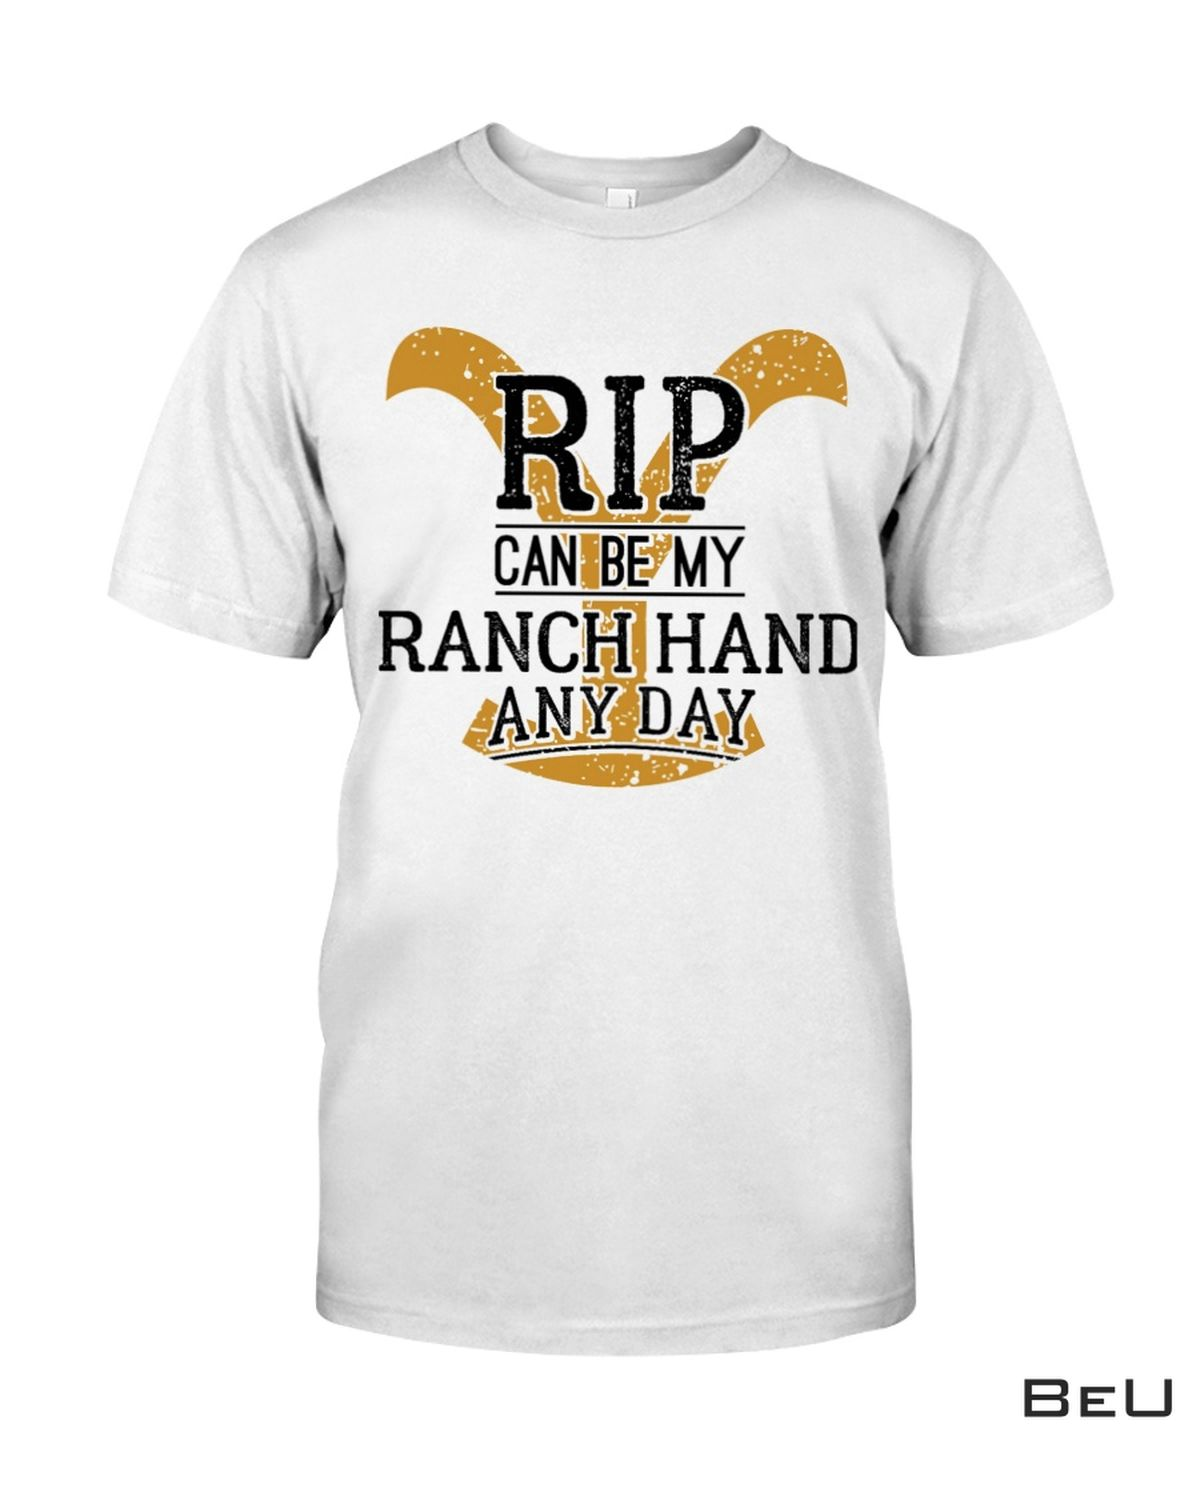 Rip Can Be My Ranch Hand Any Day Shirt, hoodie, tank top